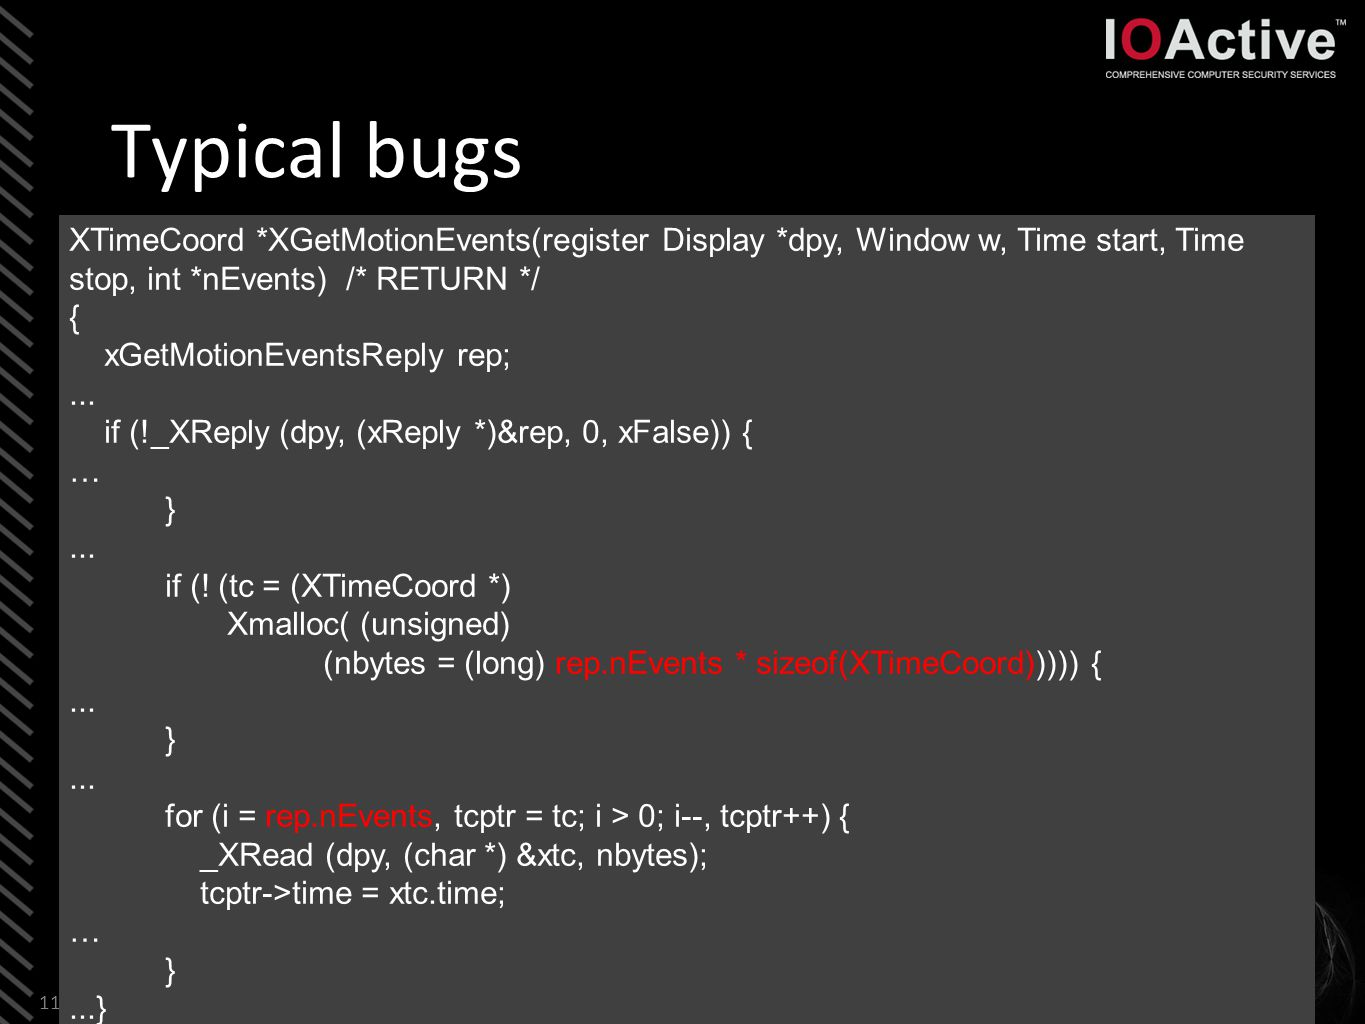 Typical bugs 12 _XkbReadGetDeviceInfoReply(Display *dpy, xkbGetDeviceInfoReply *rep, XkbDeviceInfoPtrdevi) {...